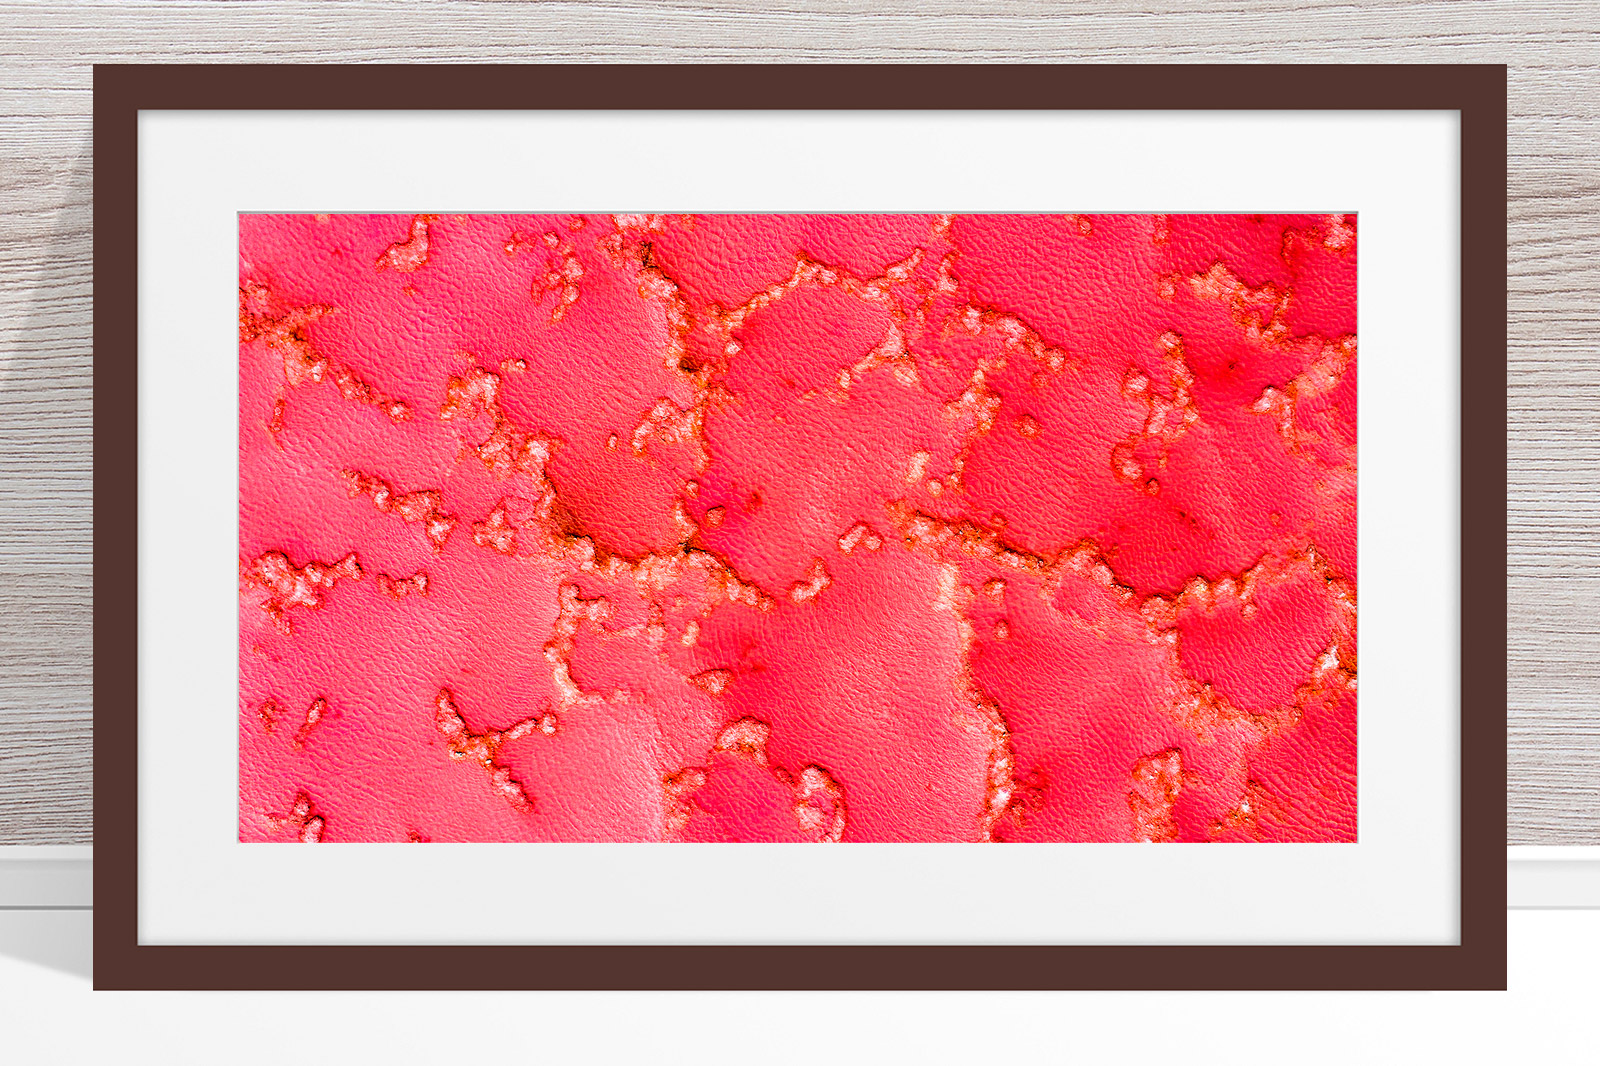 001 - Jason Mazur - 'Pink Lake, Port Gregory' Dark Frame